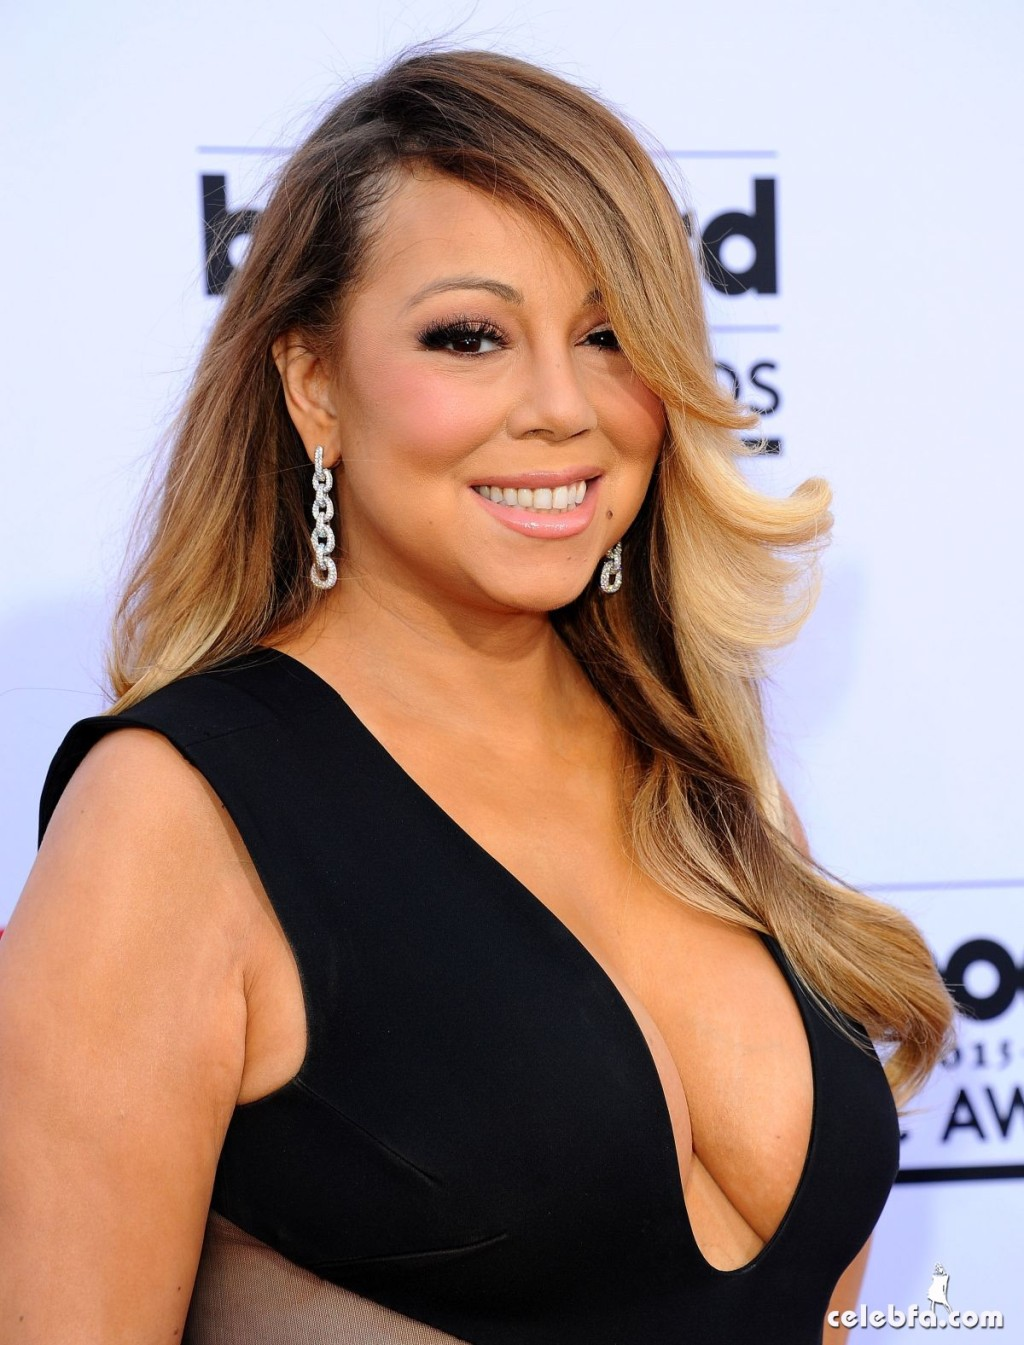 mariah-carey-2015-billboard-music-awards (1)